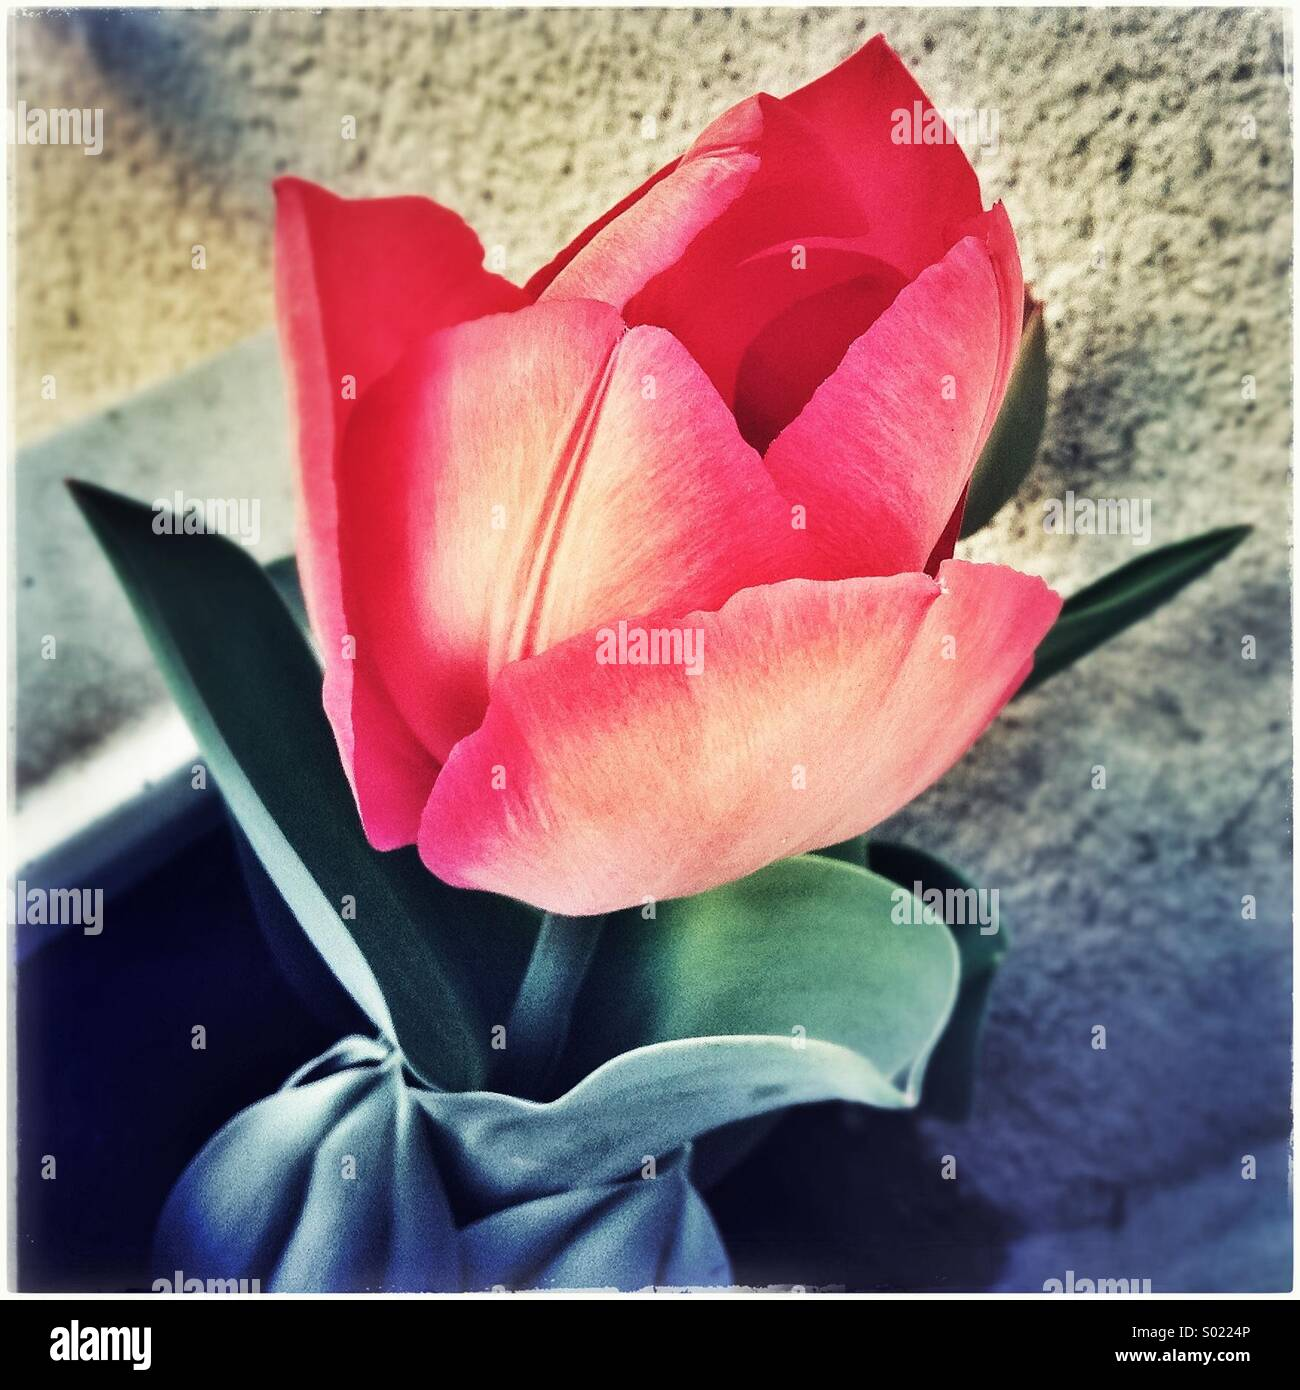 Tulip flower at home - Stock Image